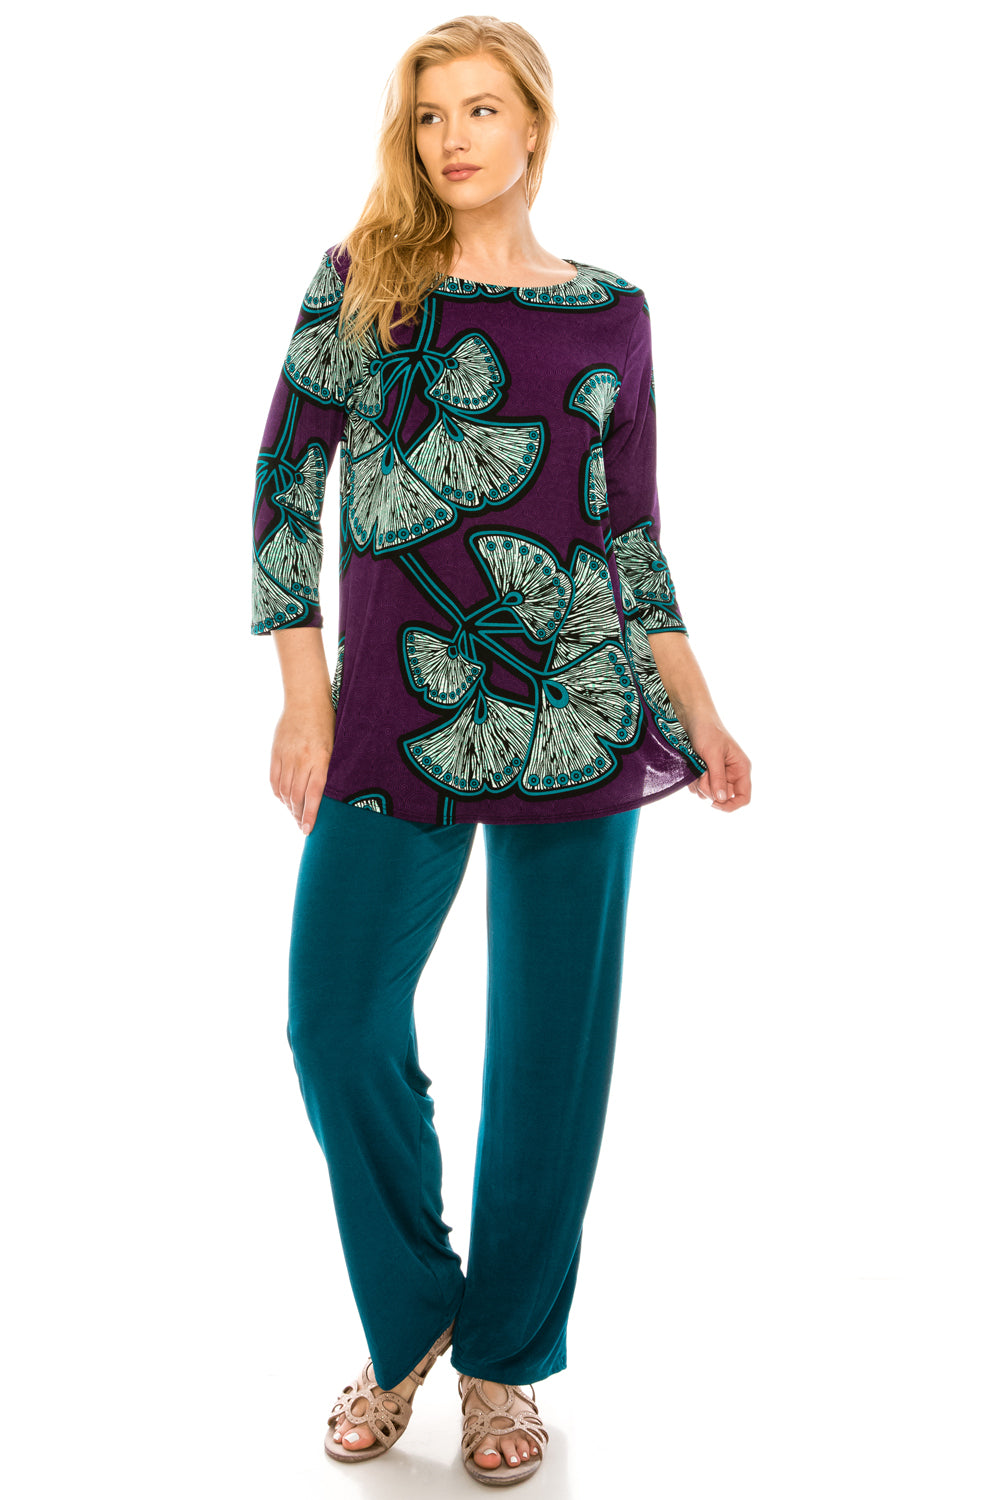 Jostar Women's Stretchy Rounded Bottom Tunic TopQuarter Sleeve Print Plus, 346BN-QXP-W076 - Jostar Online